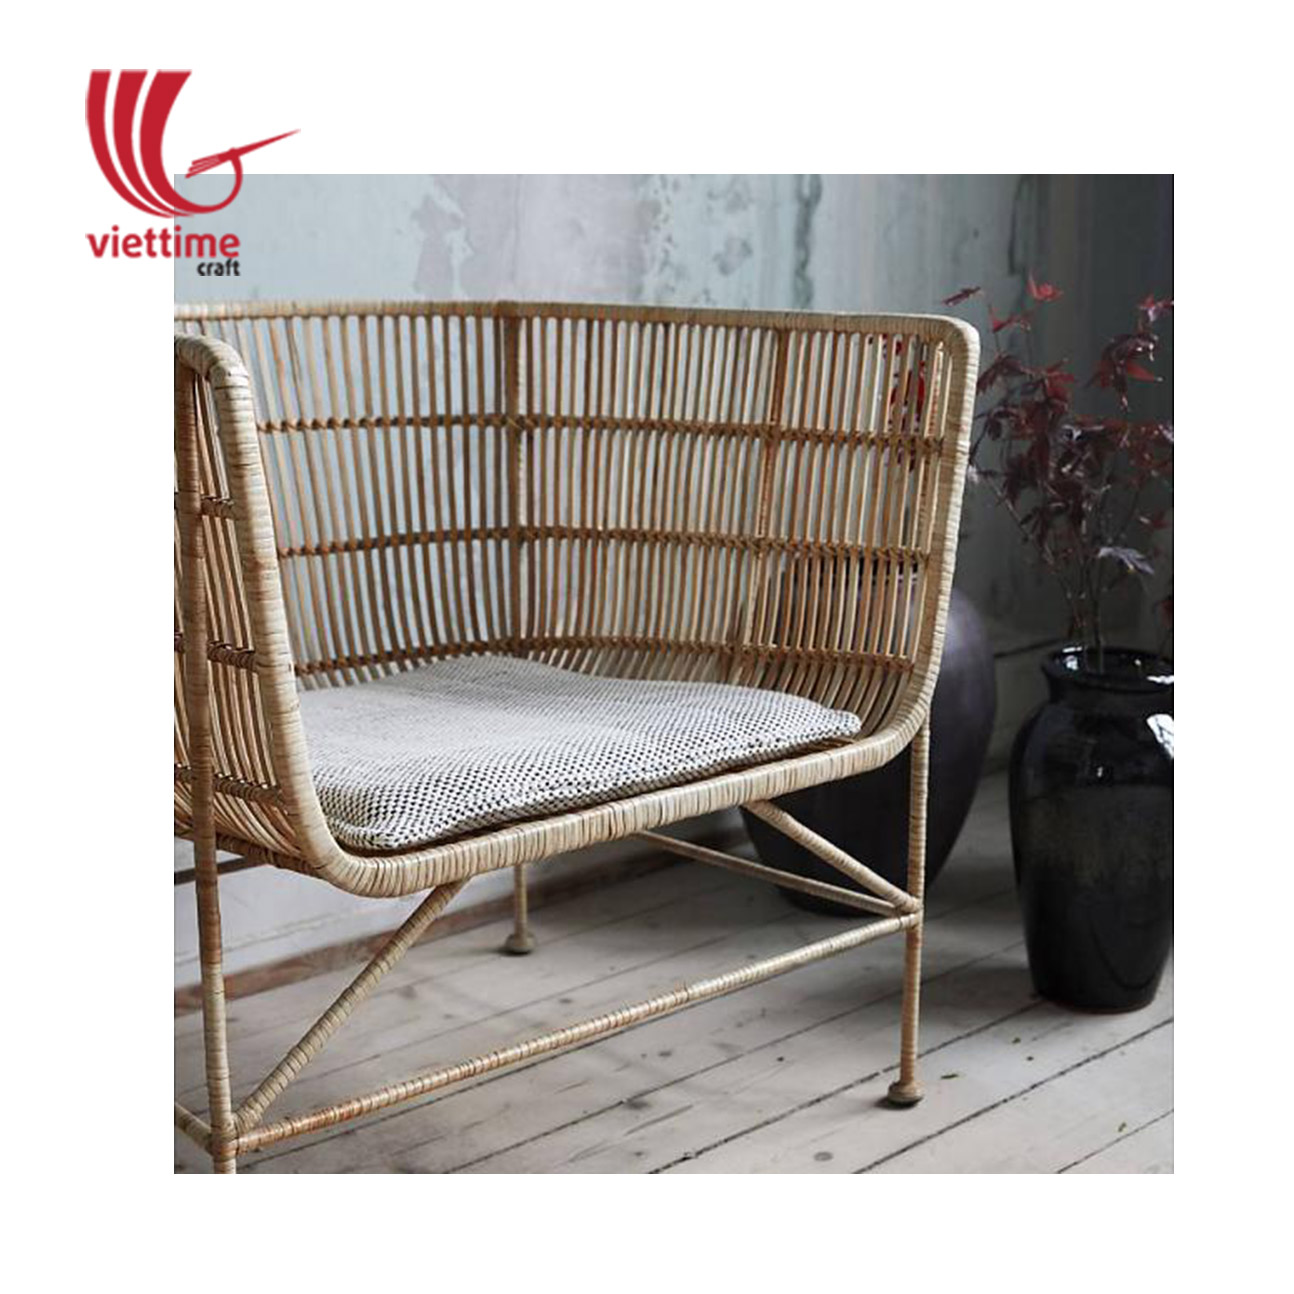 Rattan Sofa Short Soft Rattan Sofa Wholesale Made In Vietnam Viettime Craft